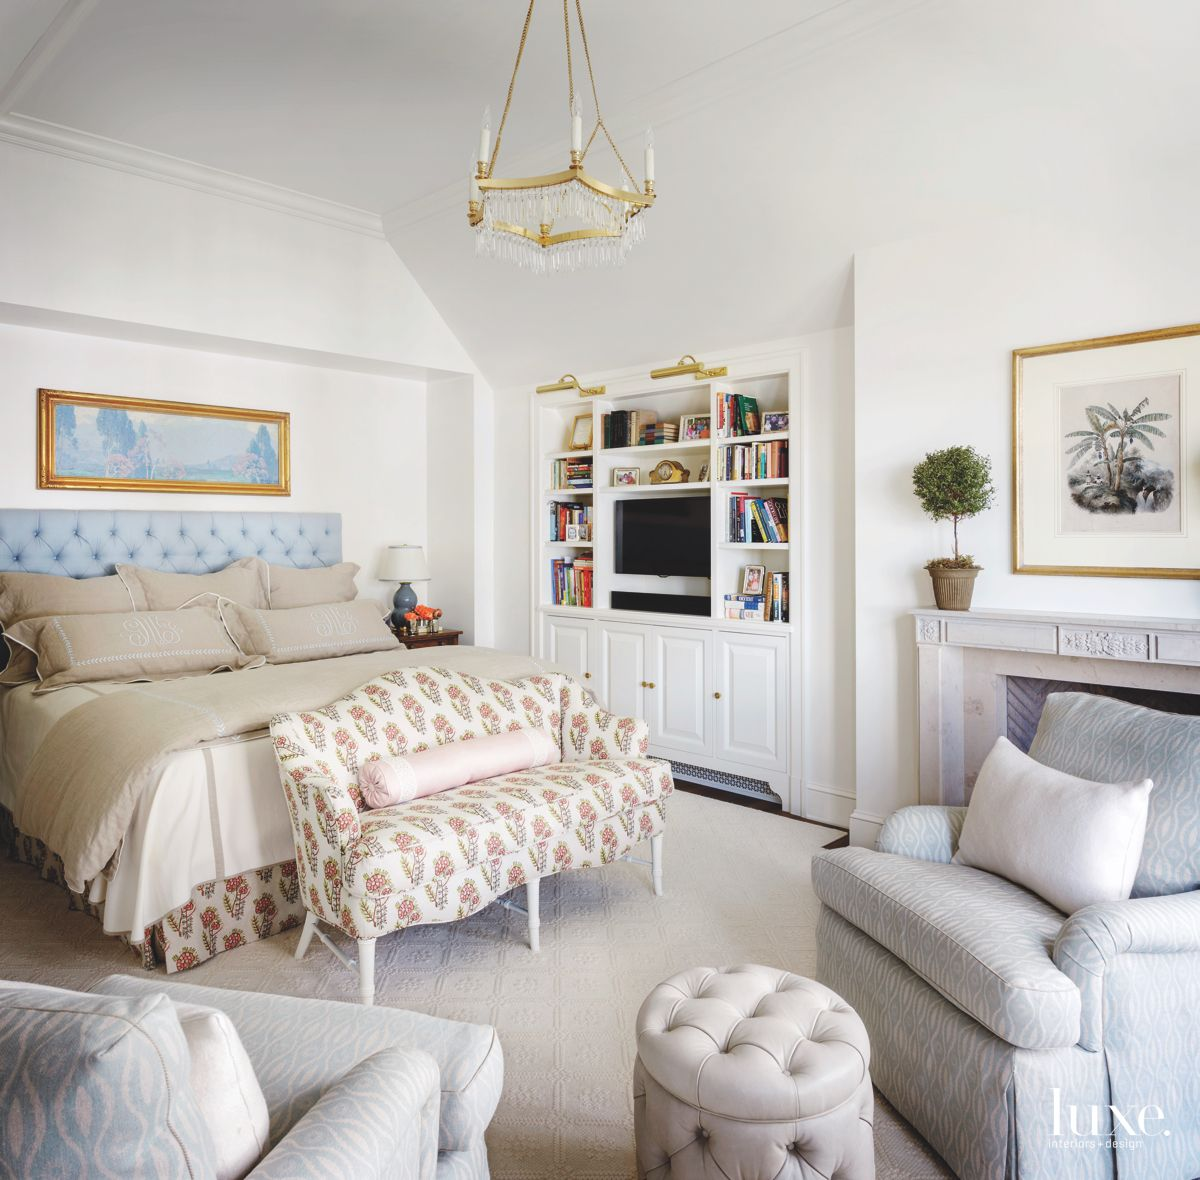 Comfy Master Bedroom with High Ceilings, Seating and Chandelier